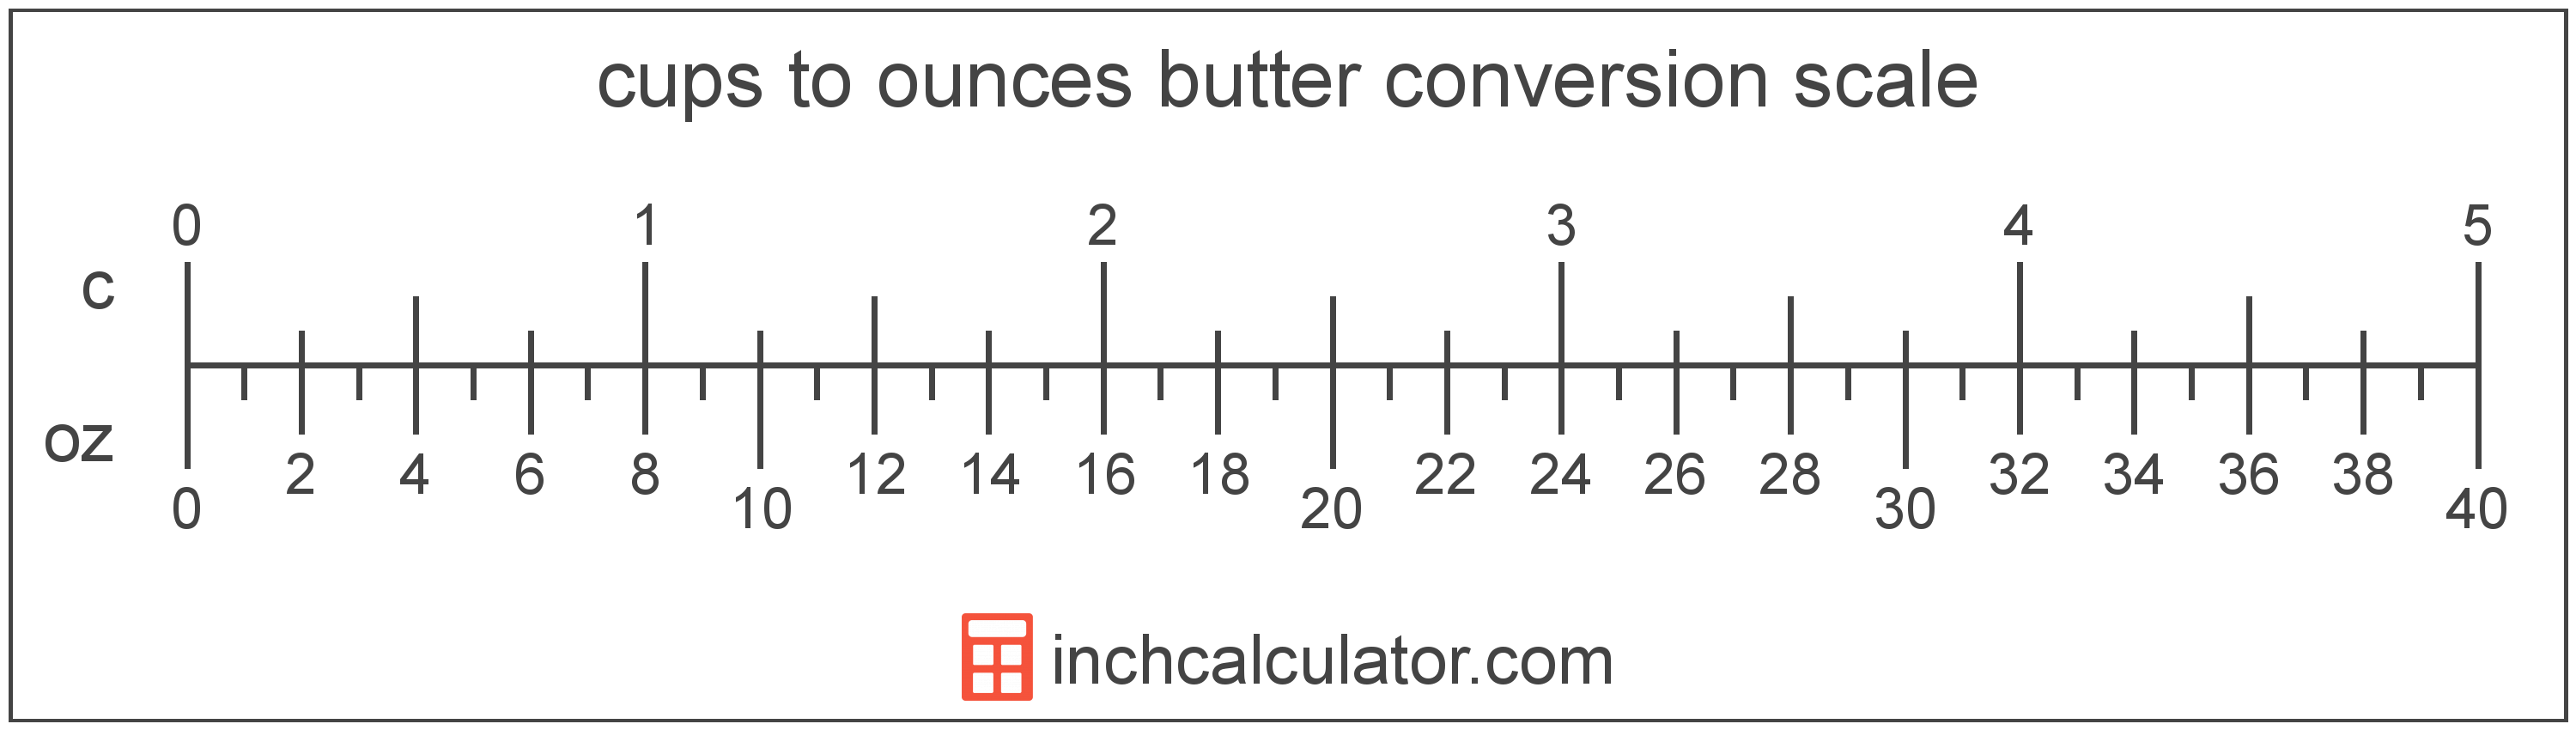 conversion scale showing ounces and equivalent cups butter values